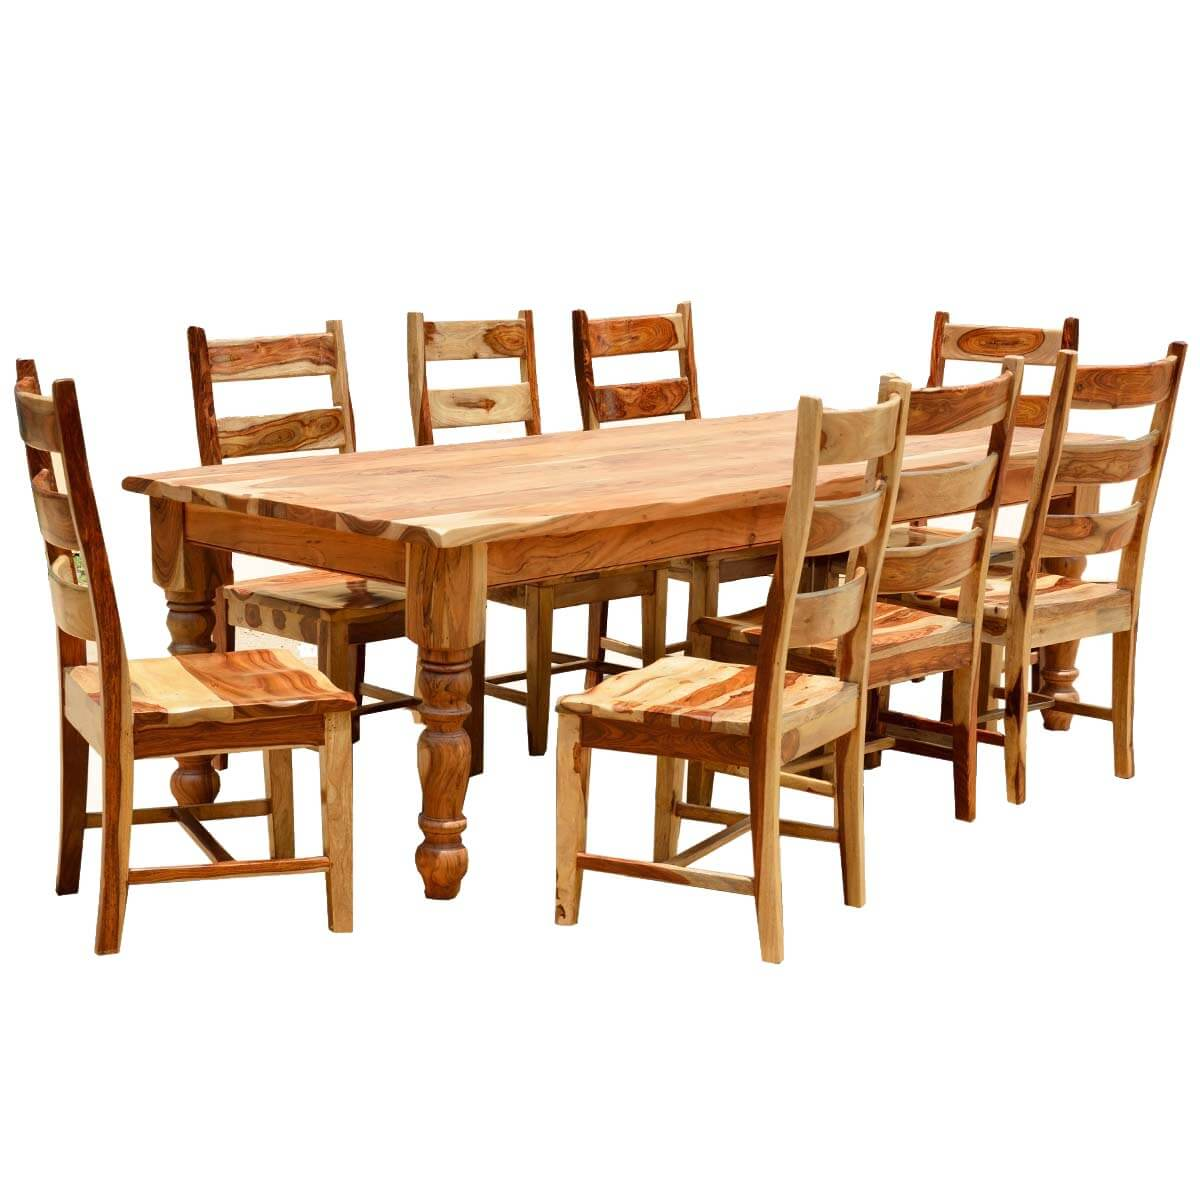 Rustic Wooden Dining Room Table ~ Rustic solid wood farmhouse dining room table chair set